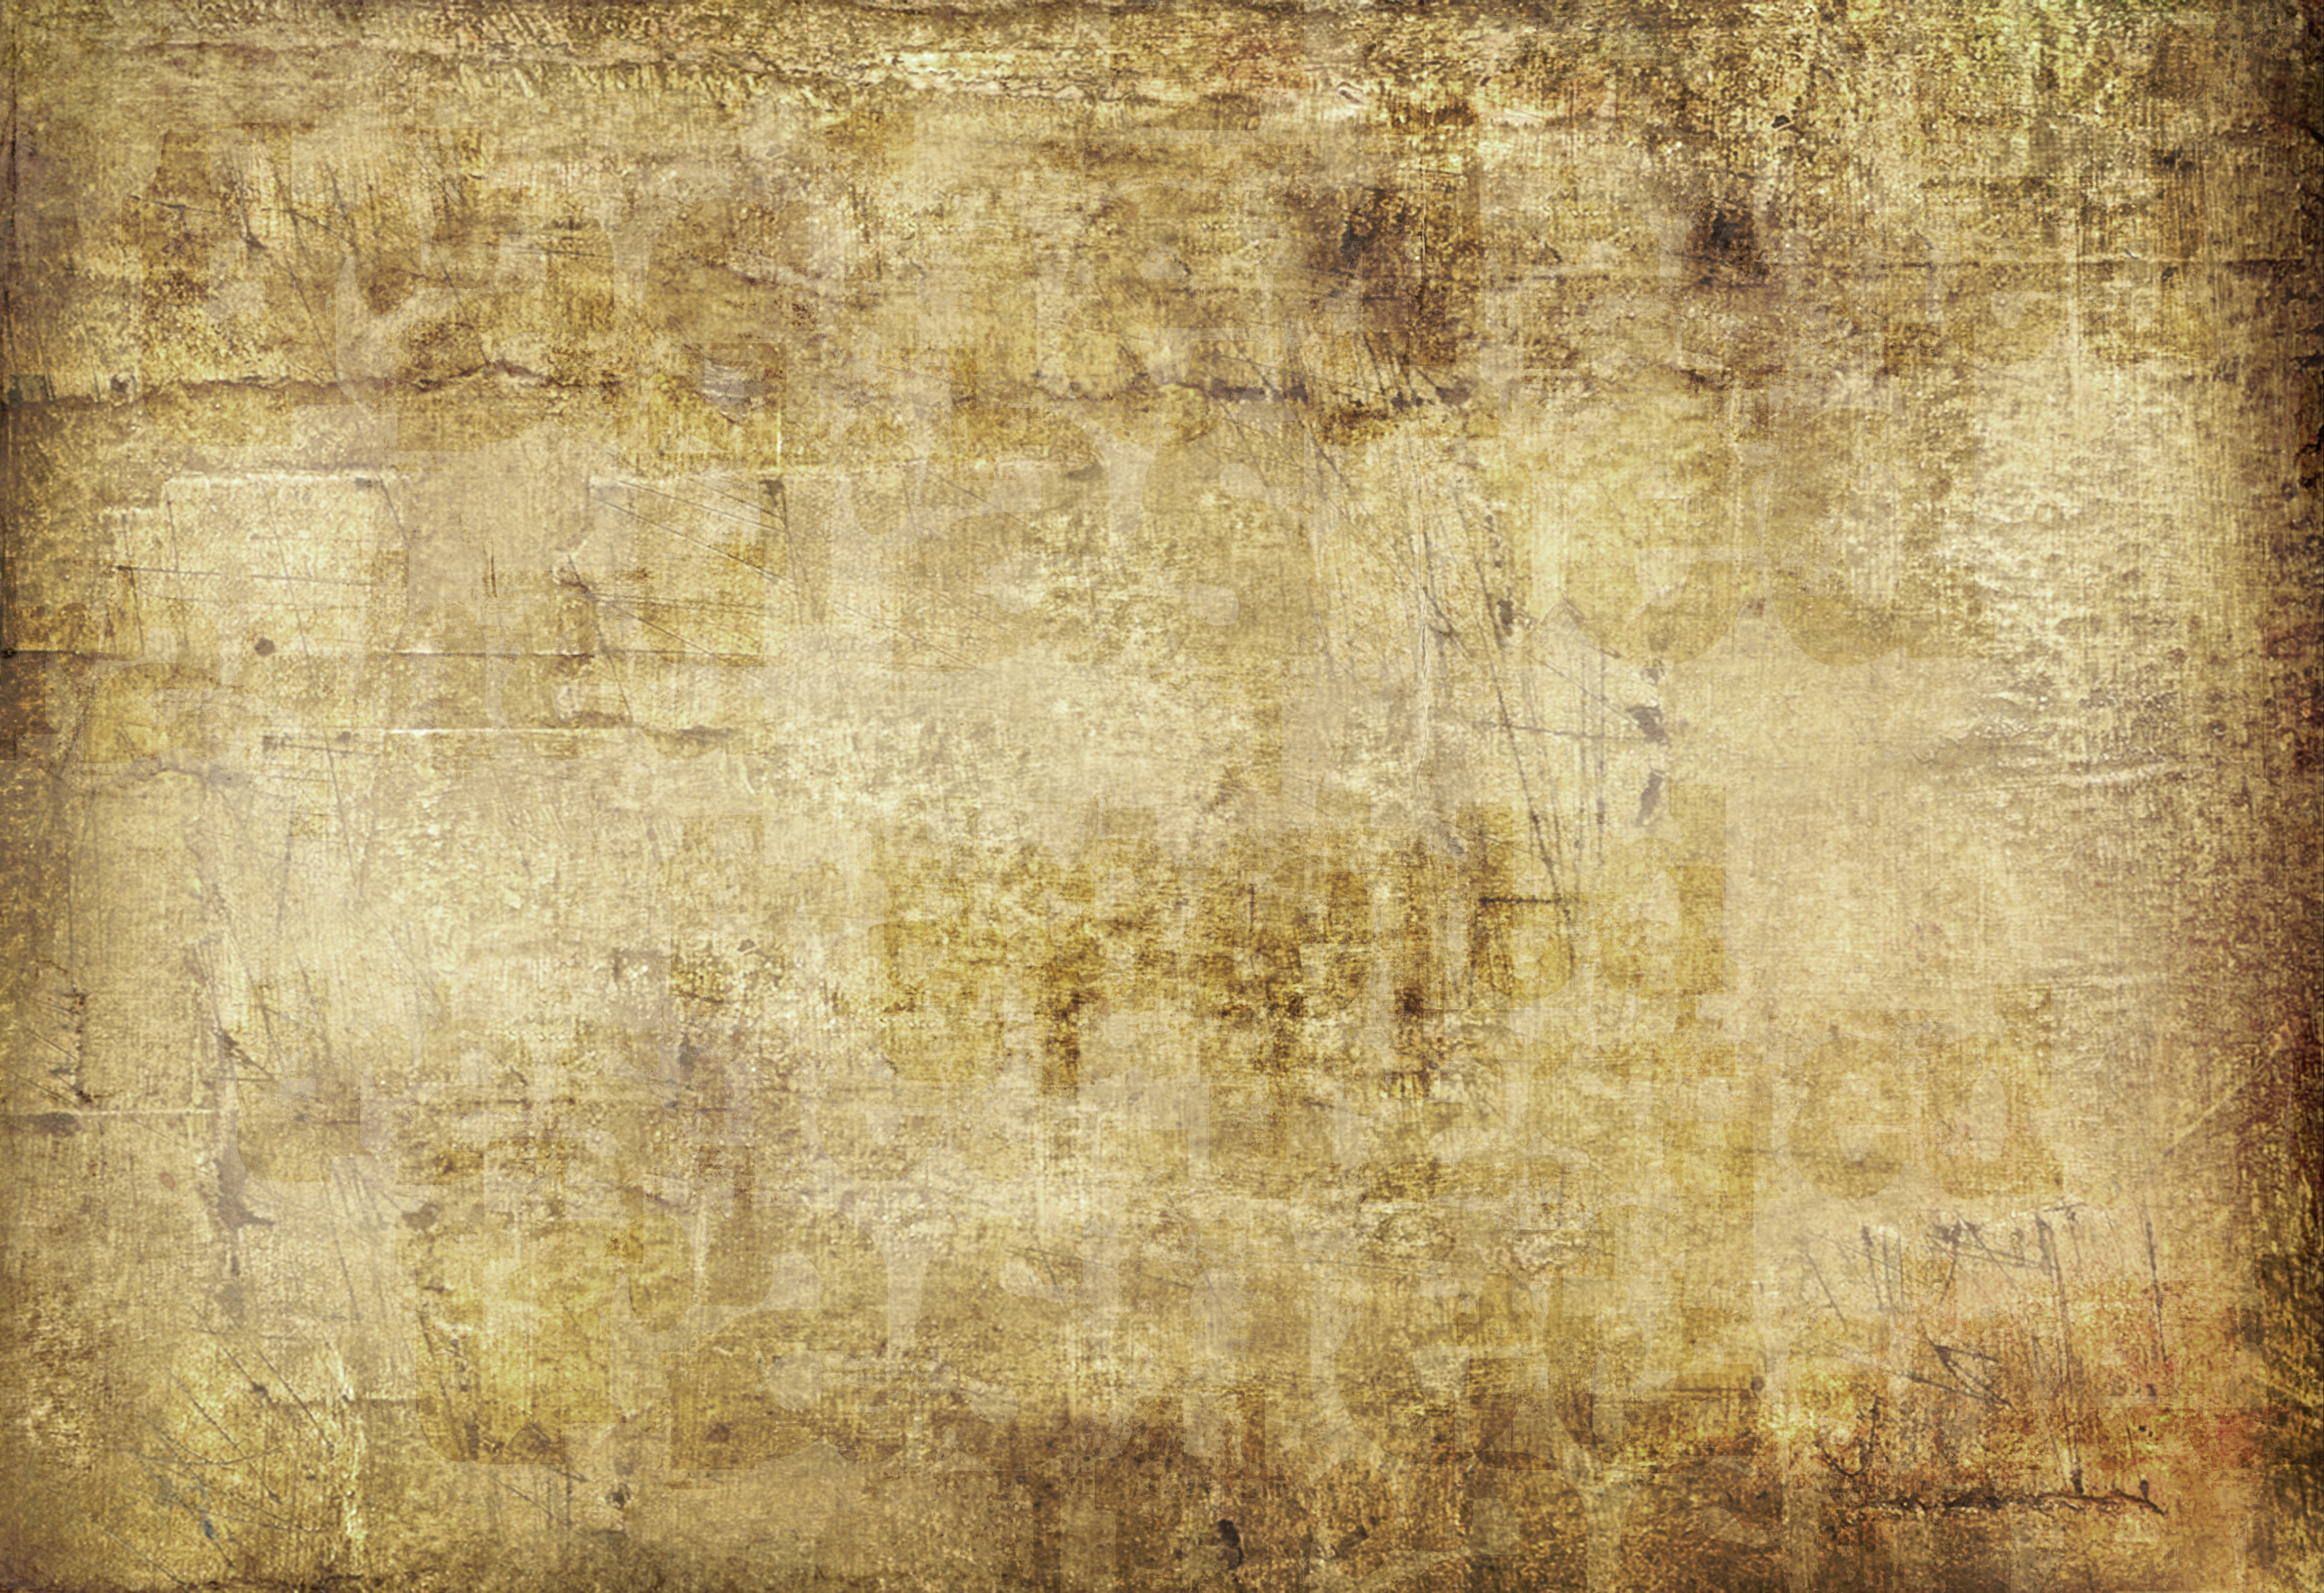 grunge texture background image free download ForTexture Background Free Download